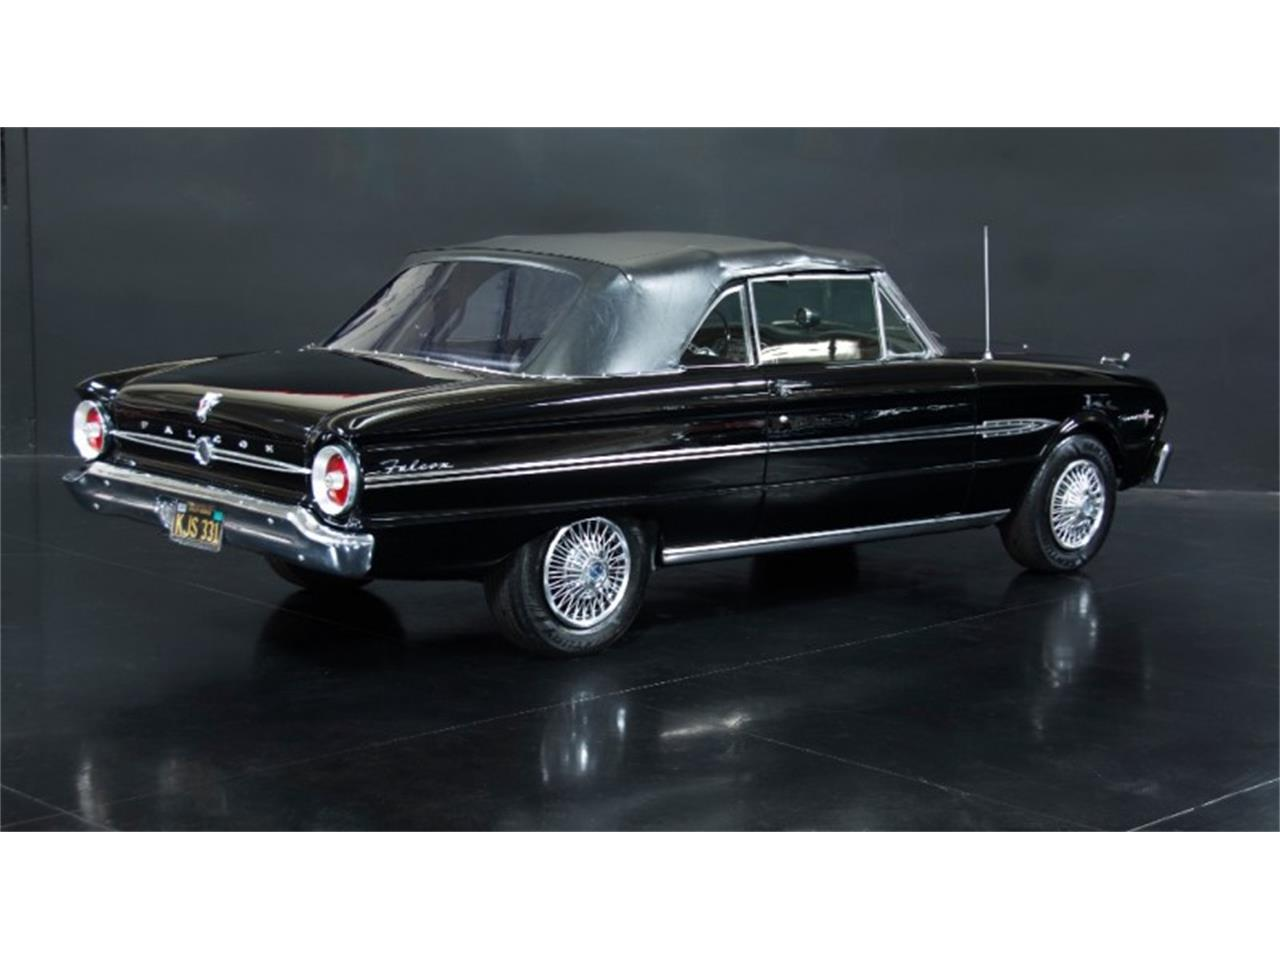 1963 Ford Falcon for sale in Milpitas, CA – photo 4